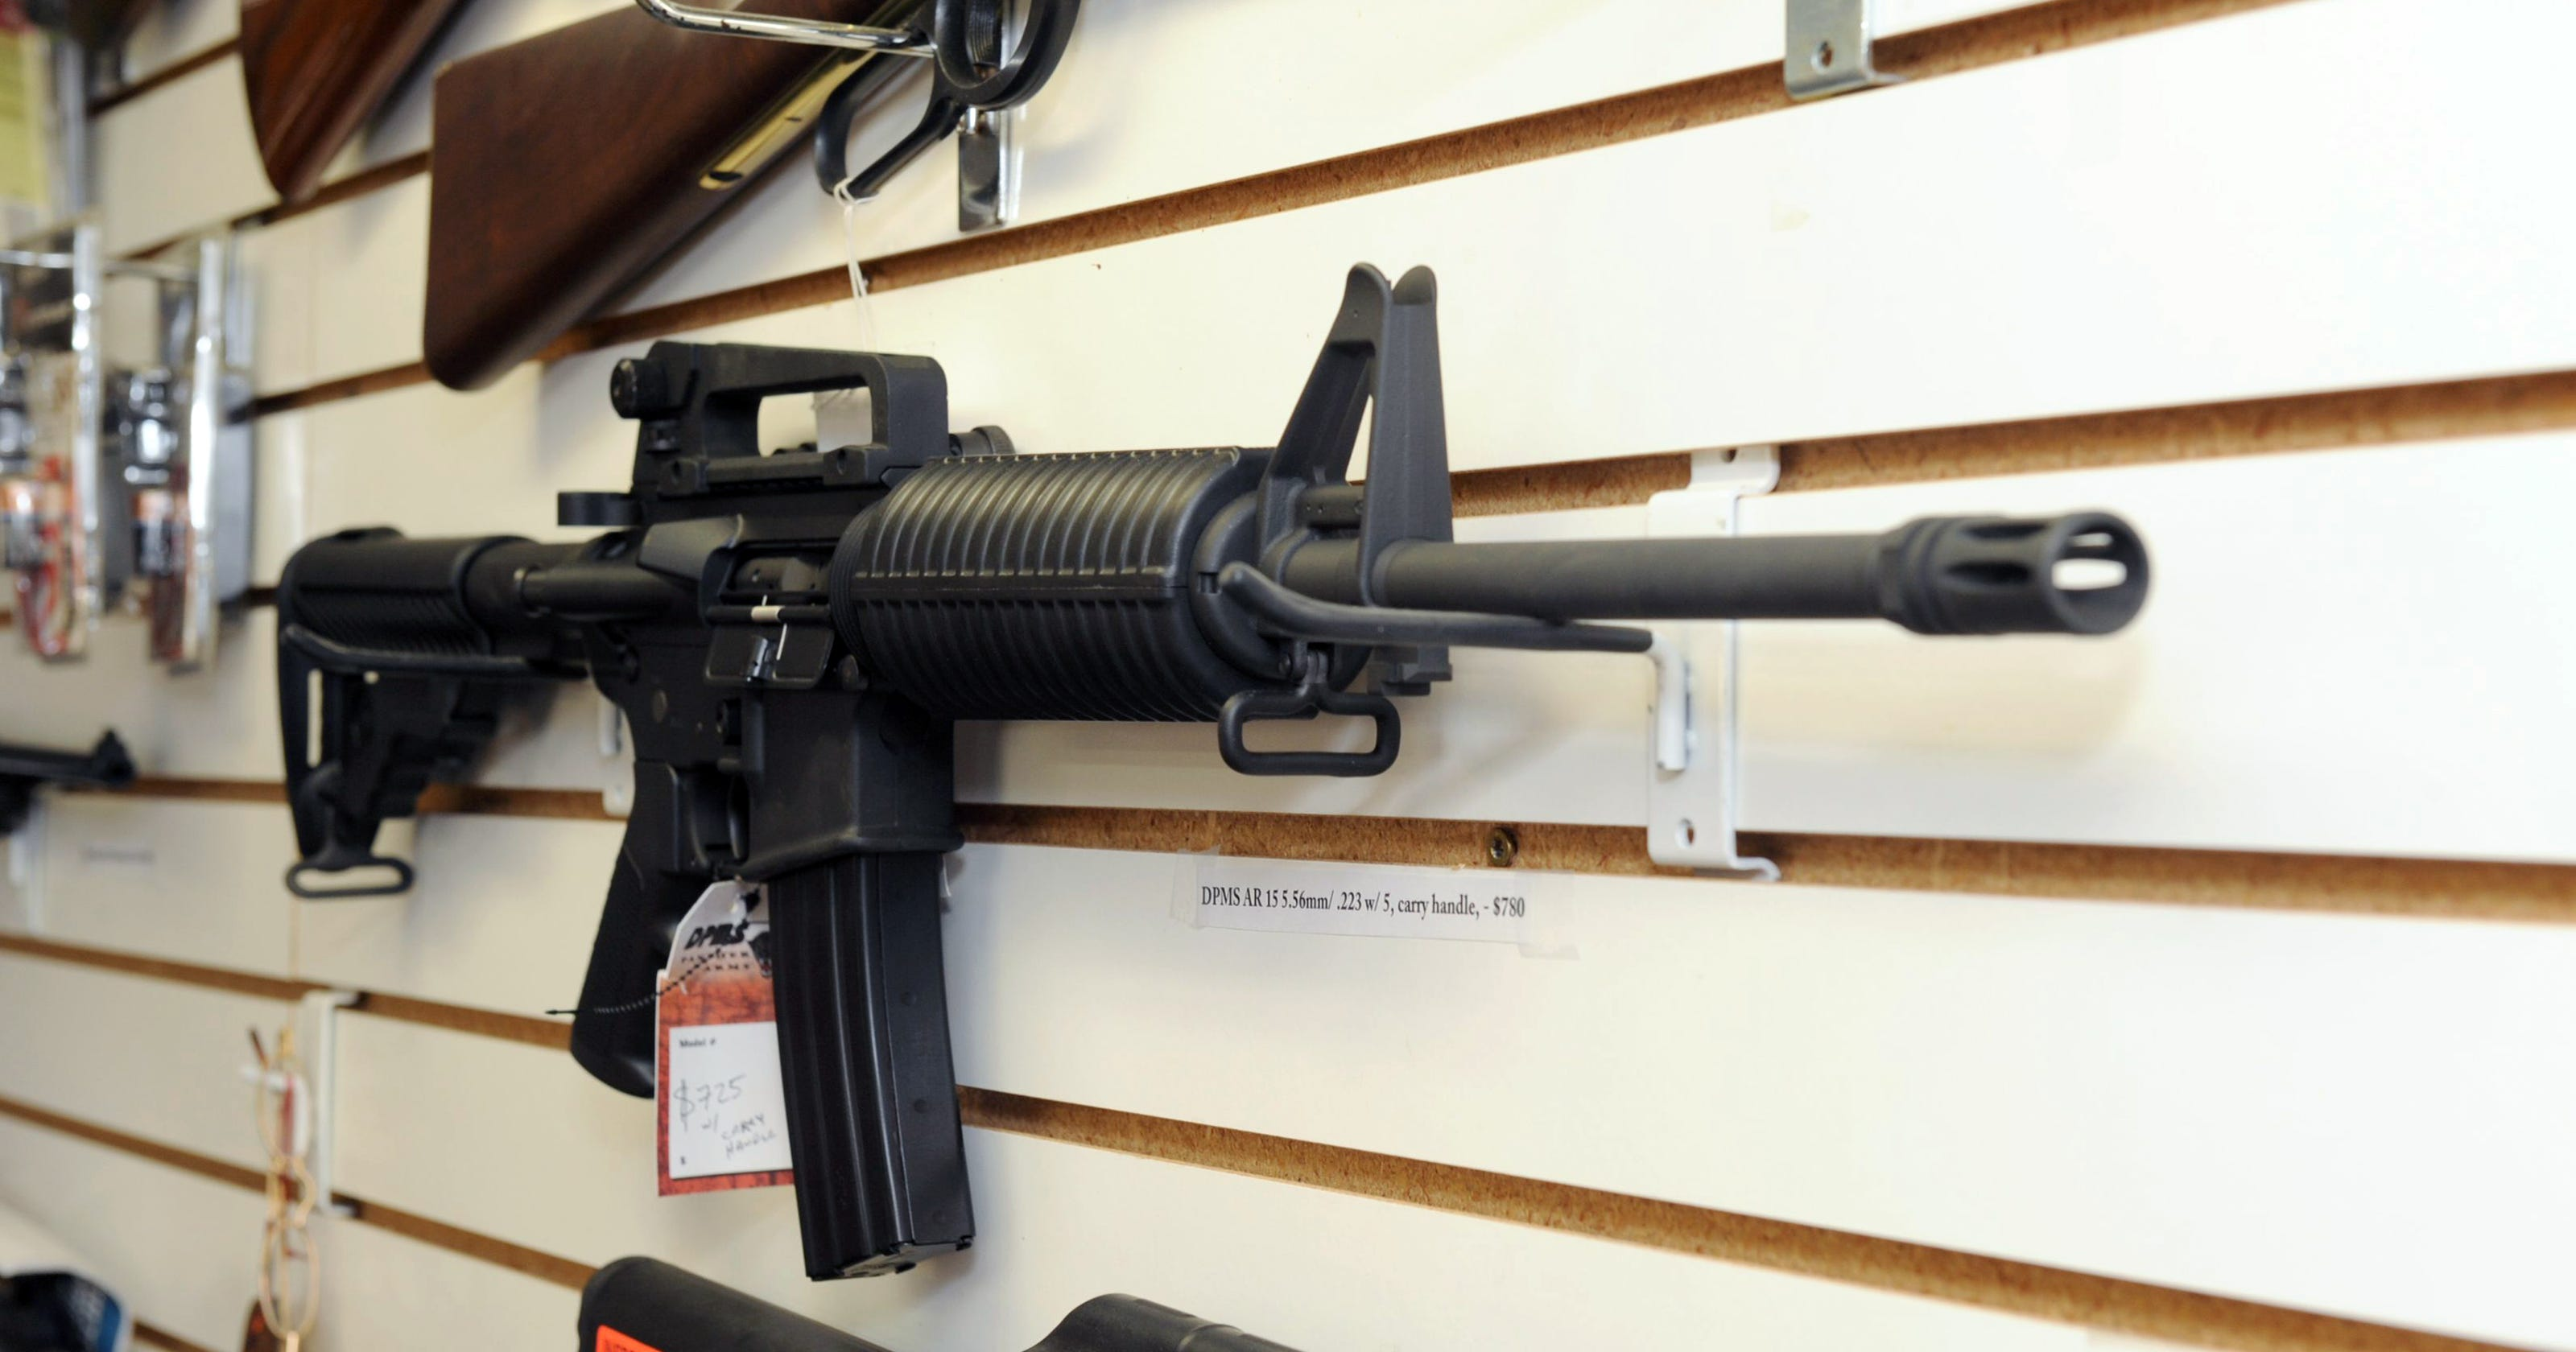 Open carry: Man can walk around with assault rifle in Philly